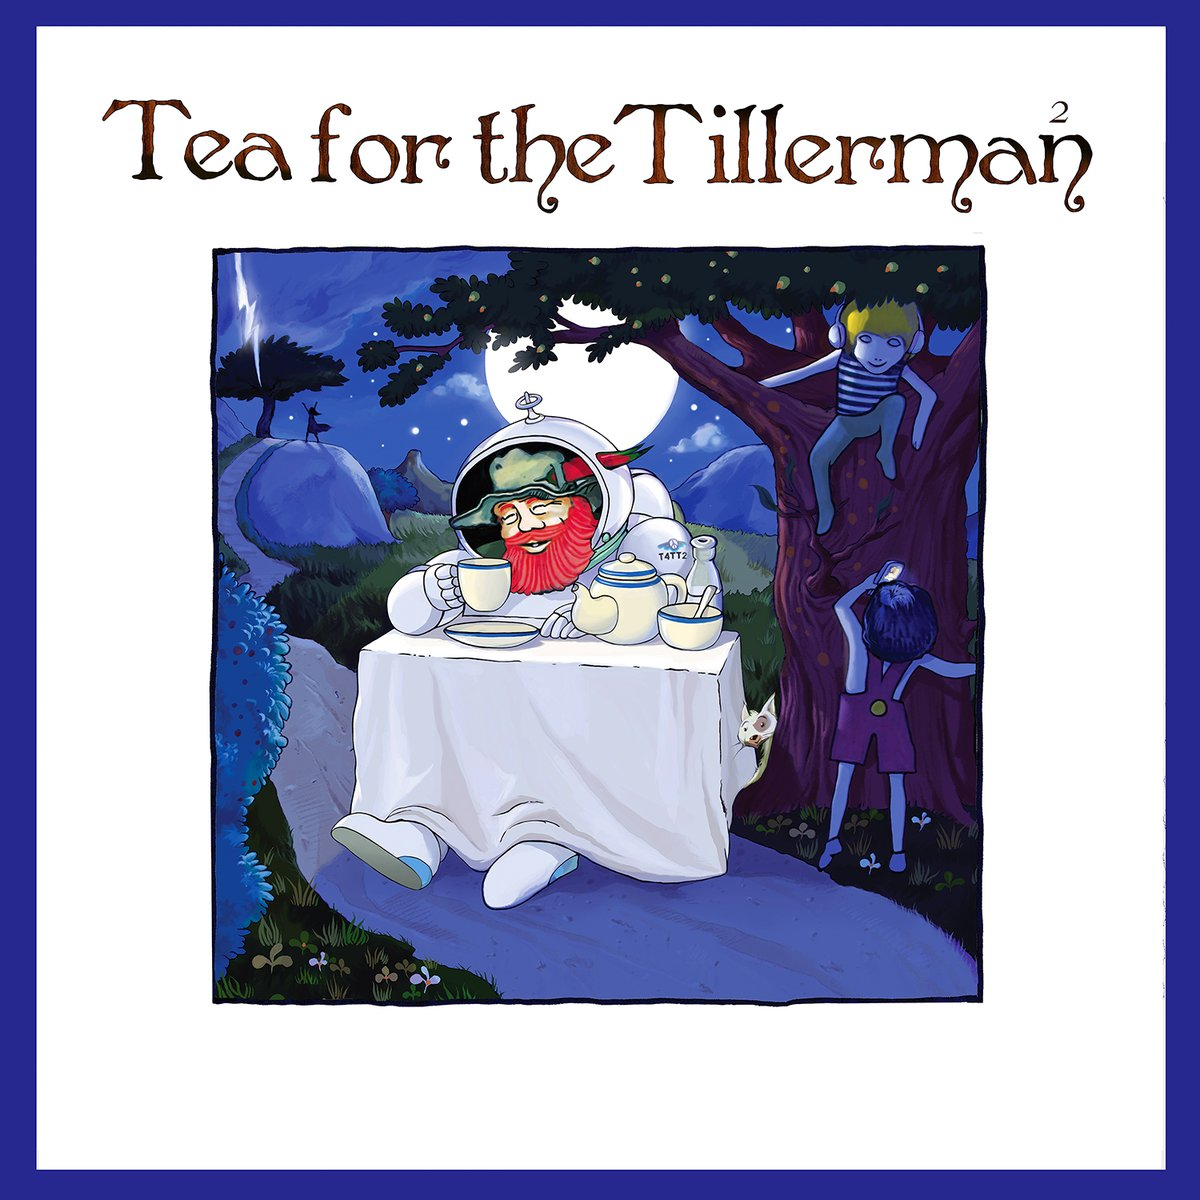 Check out the all-new Tea for the Tillerman² merch and album bundles  US: https://t.co/QtRN18KWTj 🇺🇸 🌎 UK: https://t.co/G0Dqbf2TkM 🇬🇧 🇪🇺  #Tillerman50 #T4TT2 https://t.co/ONboIZoNCO